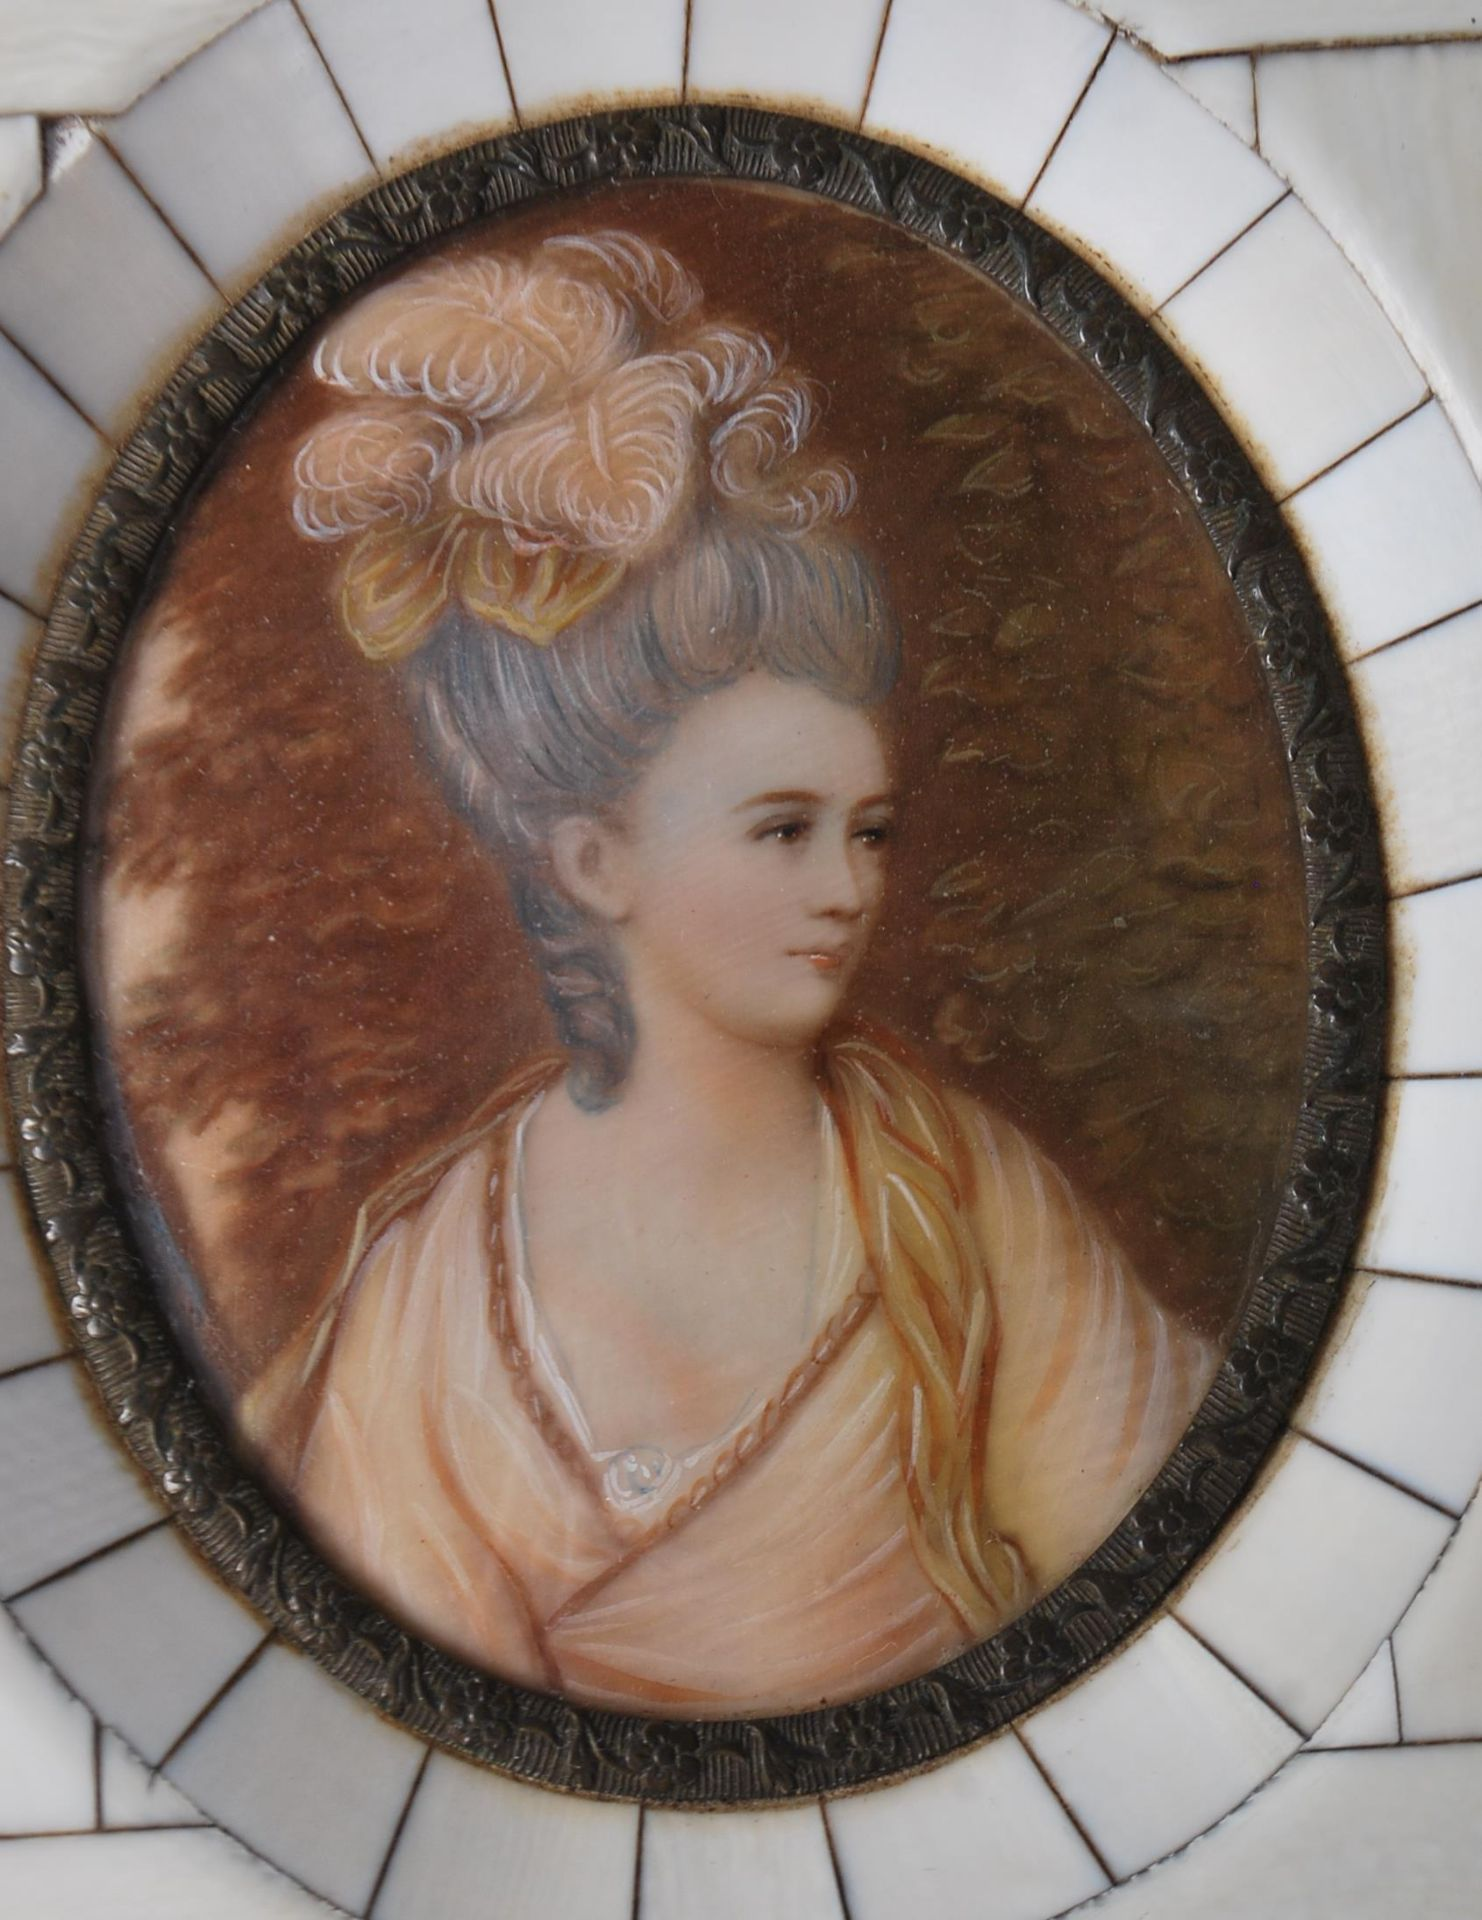 GROUP OF SIX ANTIQUE AND VINTAGE MINIATURE PORTRAITS - TWO HAND PAINTED - Image 7 of 8